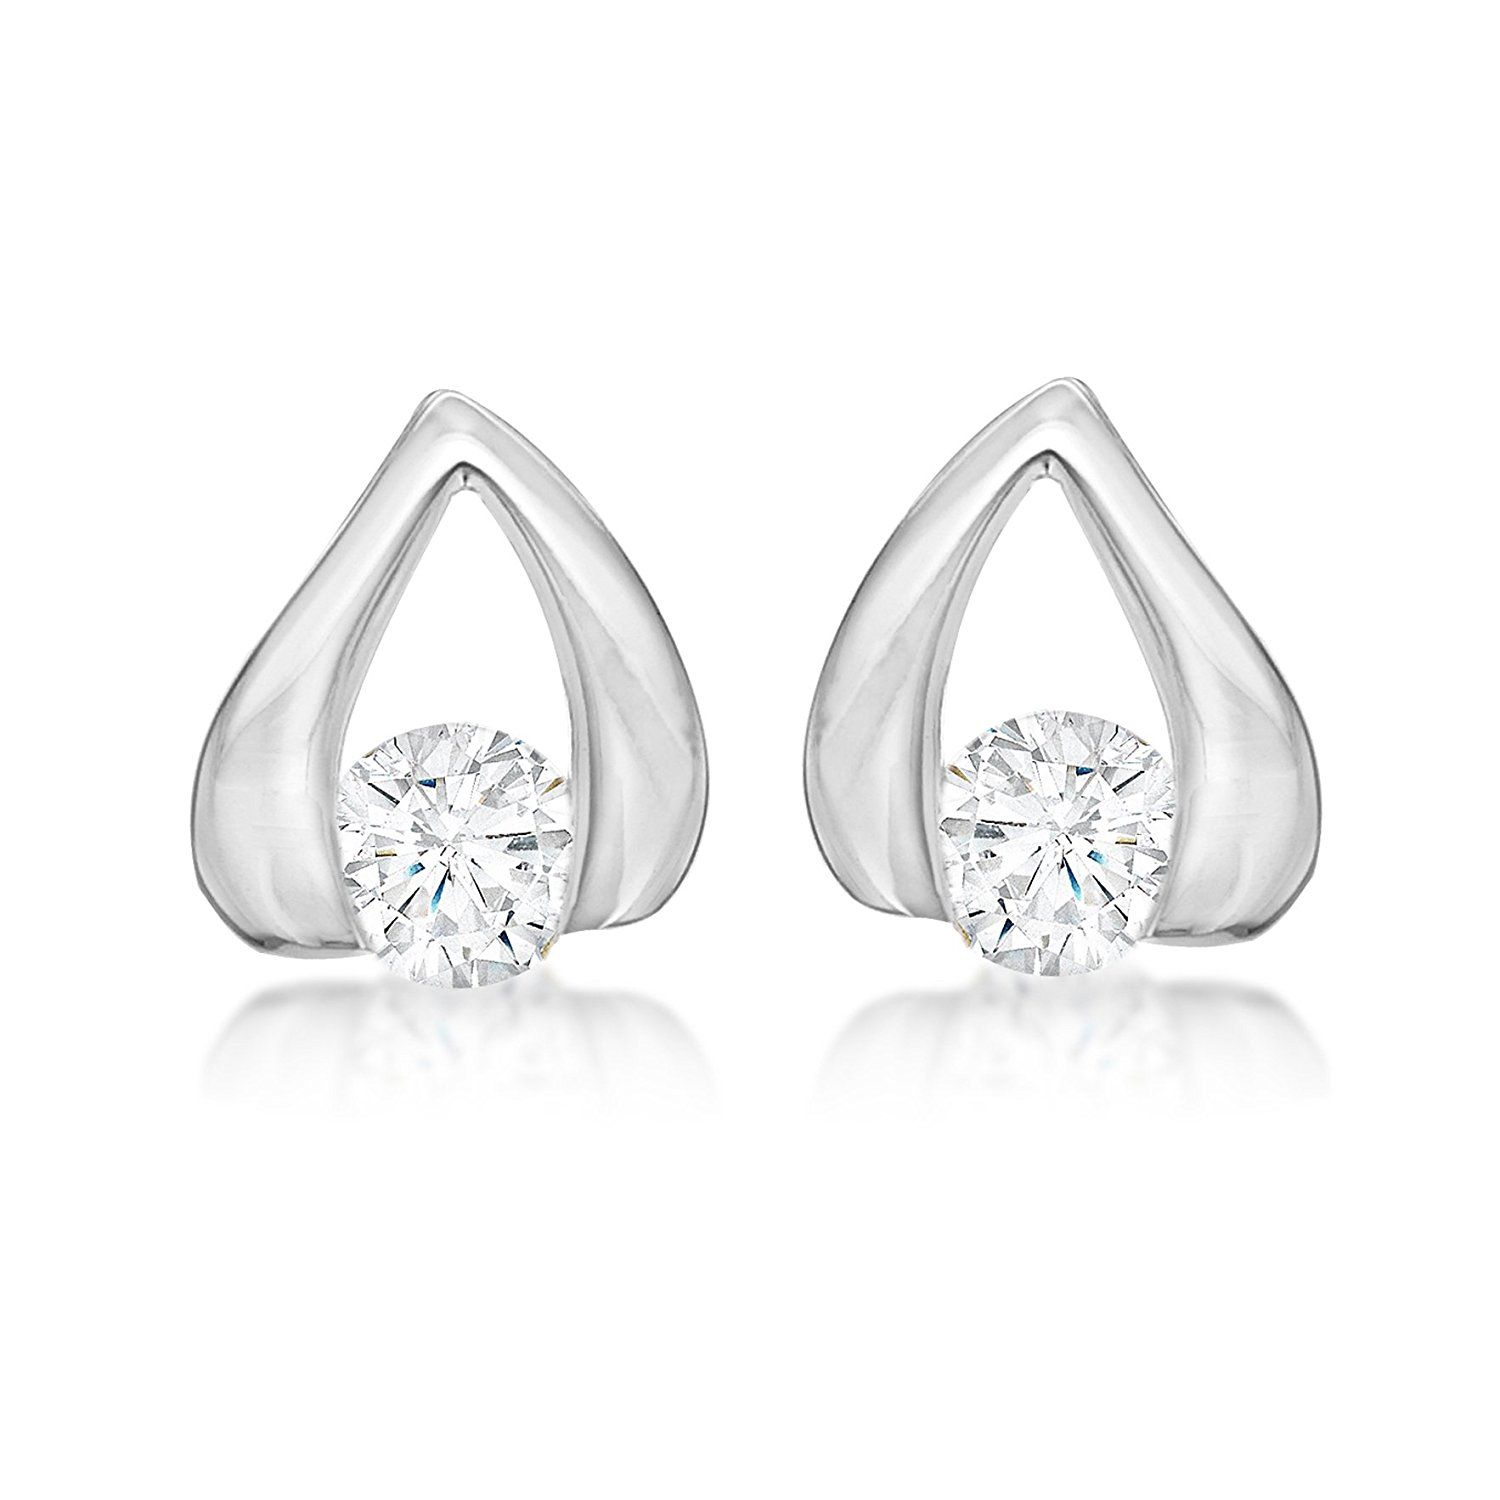 Tuscany Silver Sterling White Cubic Zirconia Stud Earrings Click Image To Read